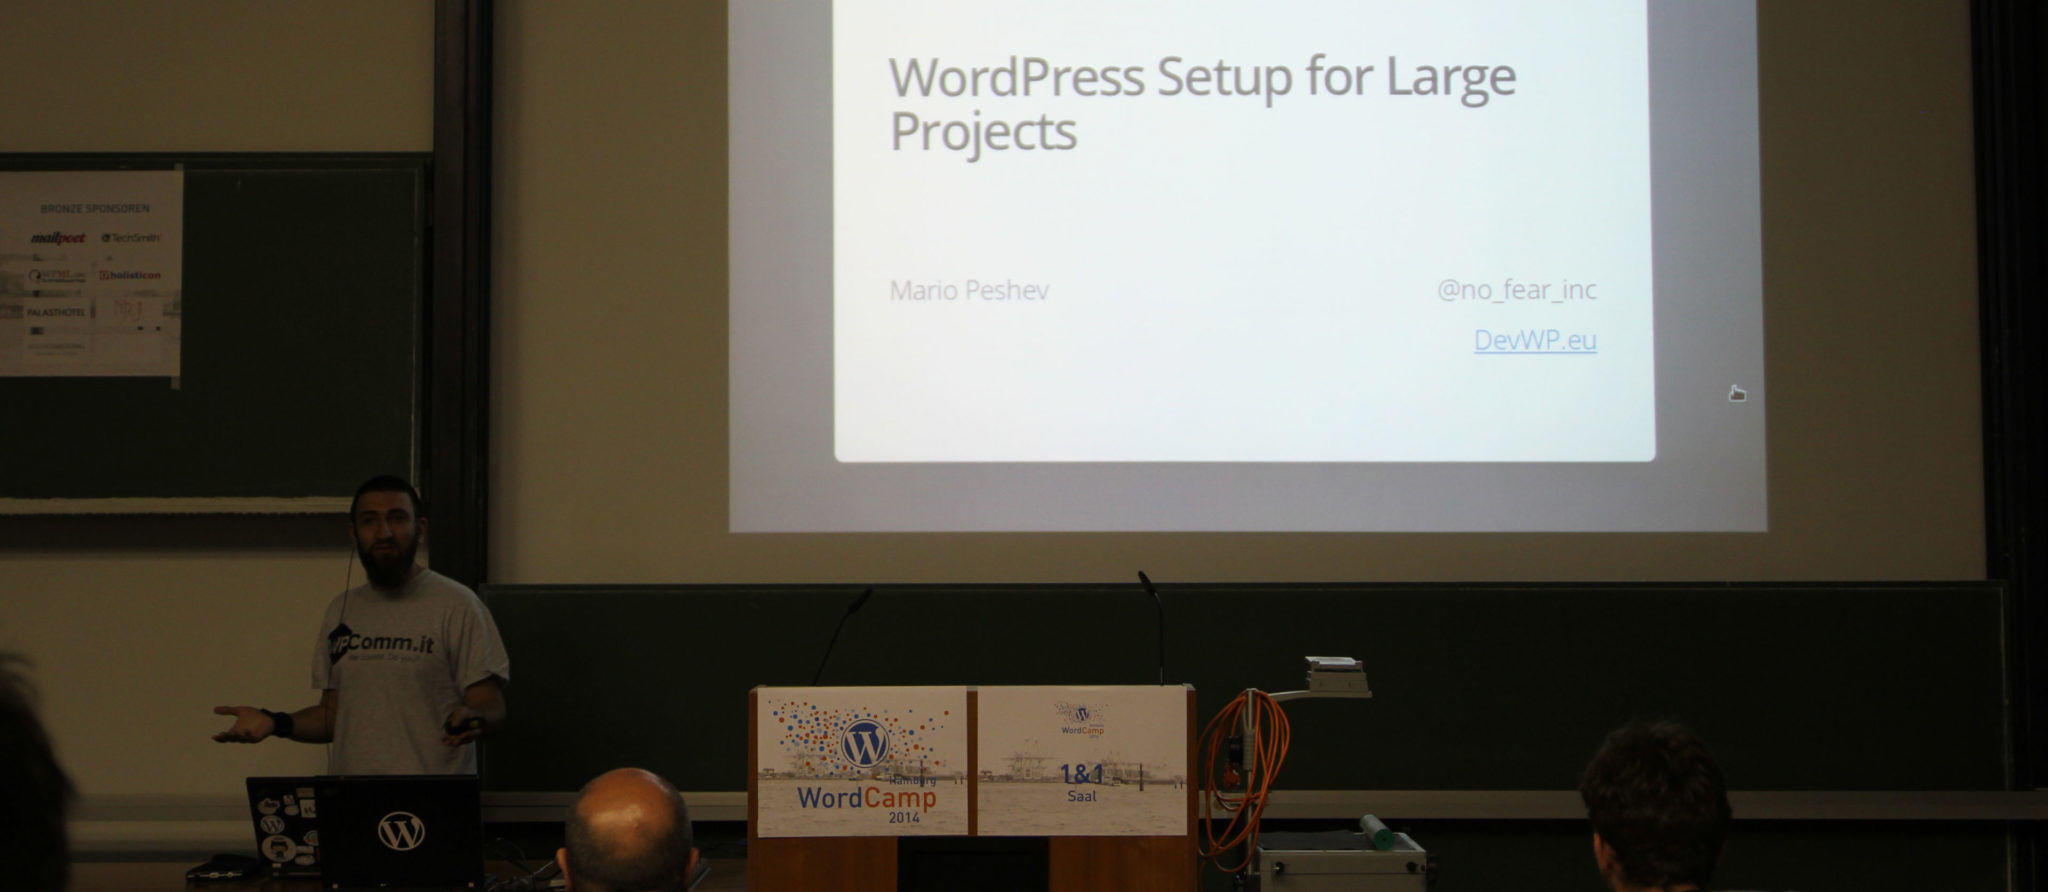 Mario Peshev - Optimize your-Wordpress Workflow